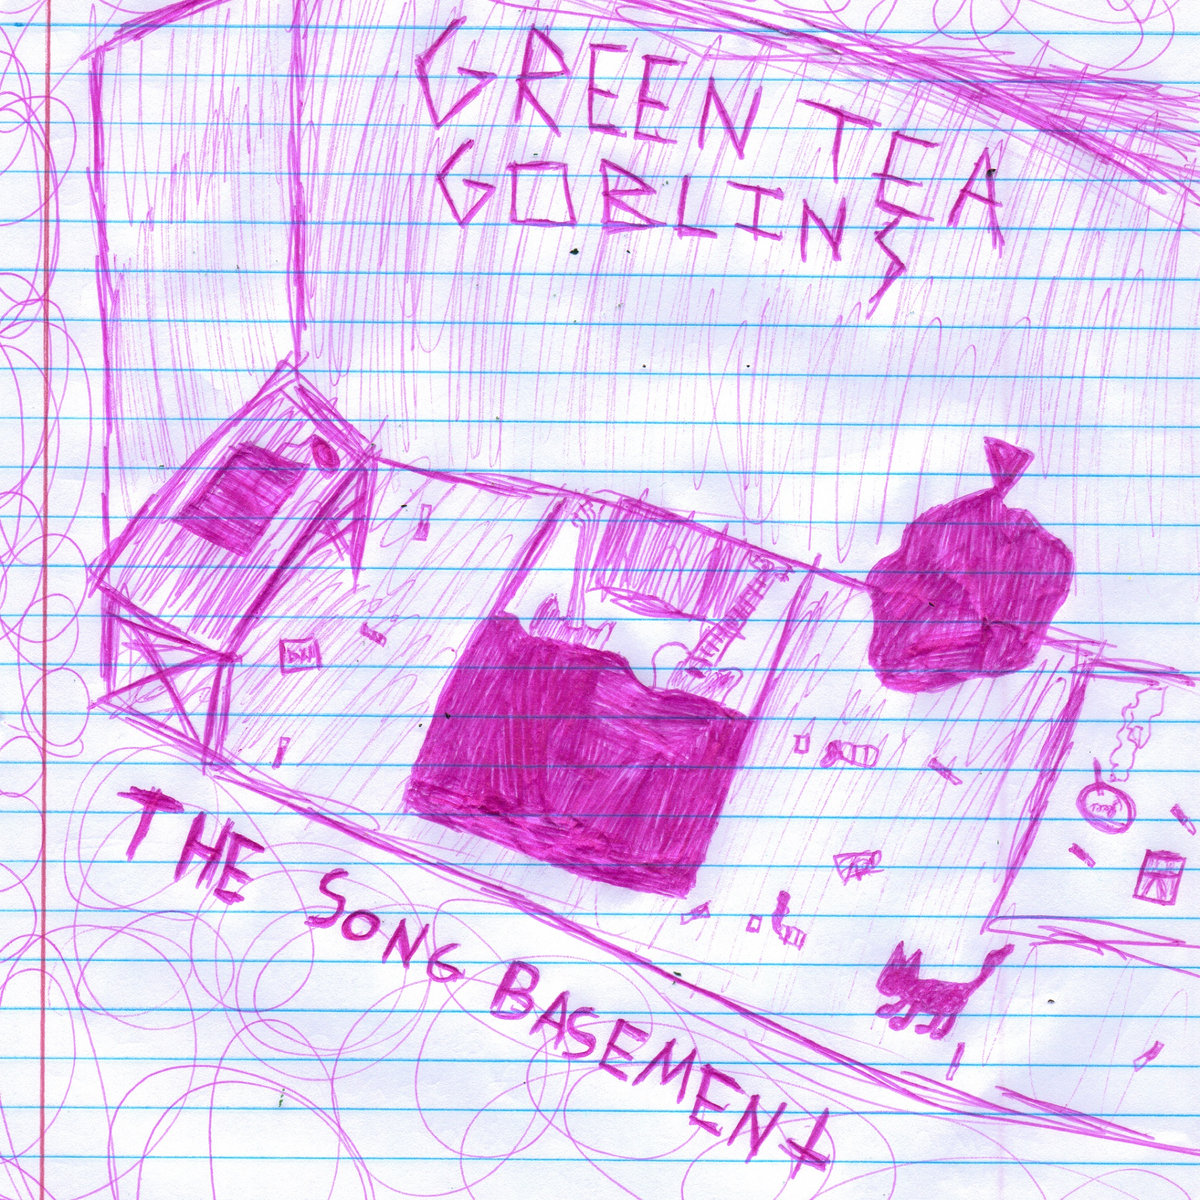 The Song Basement by Green Tea Goblins